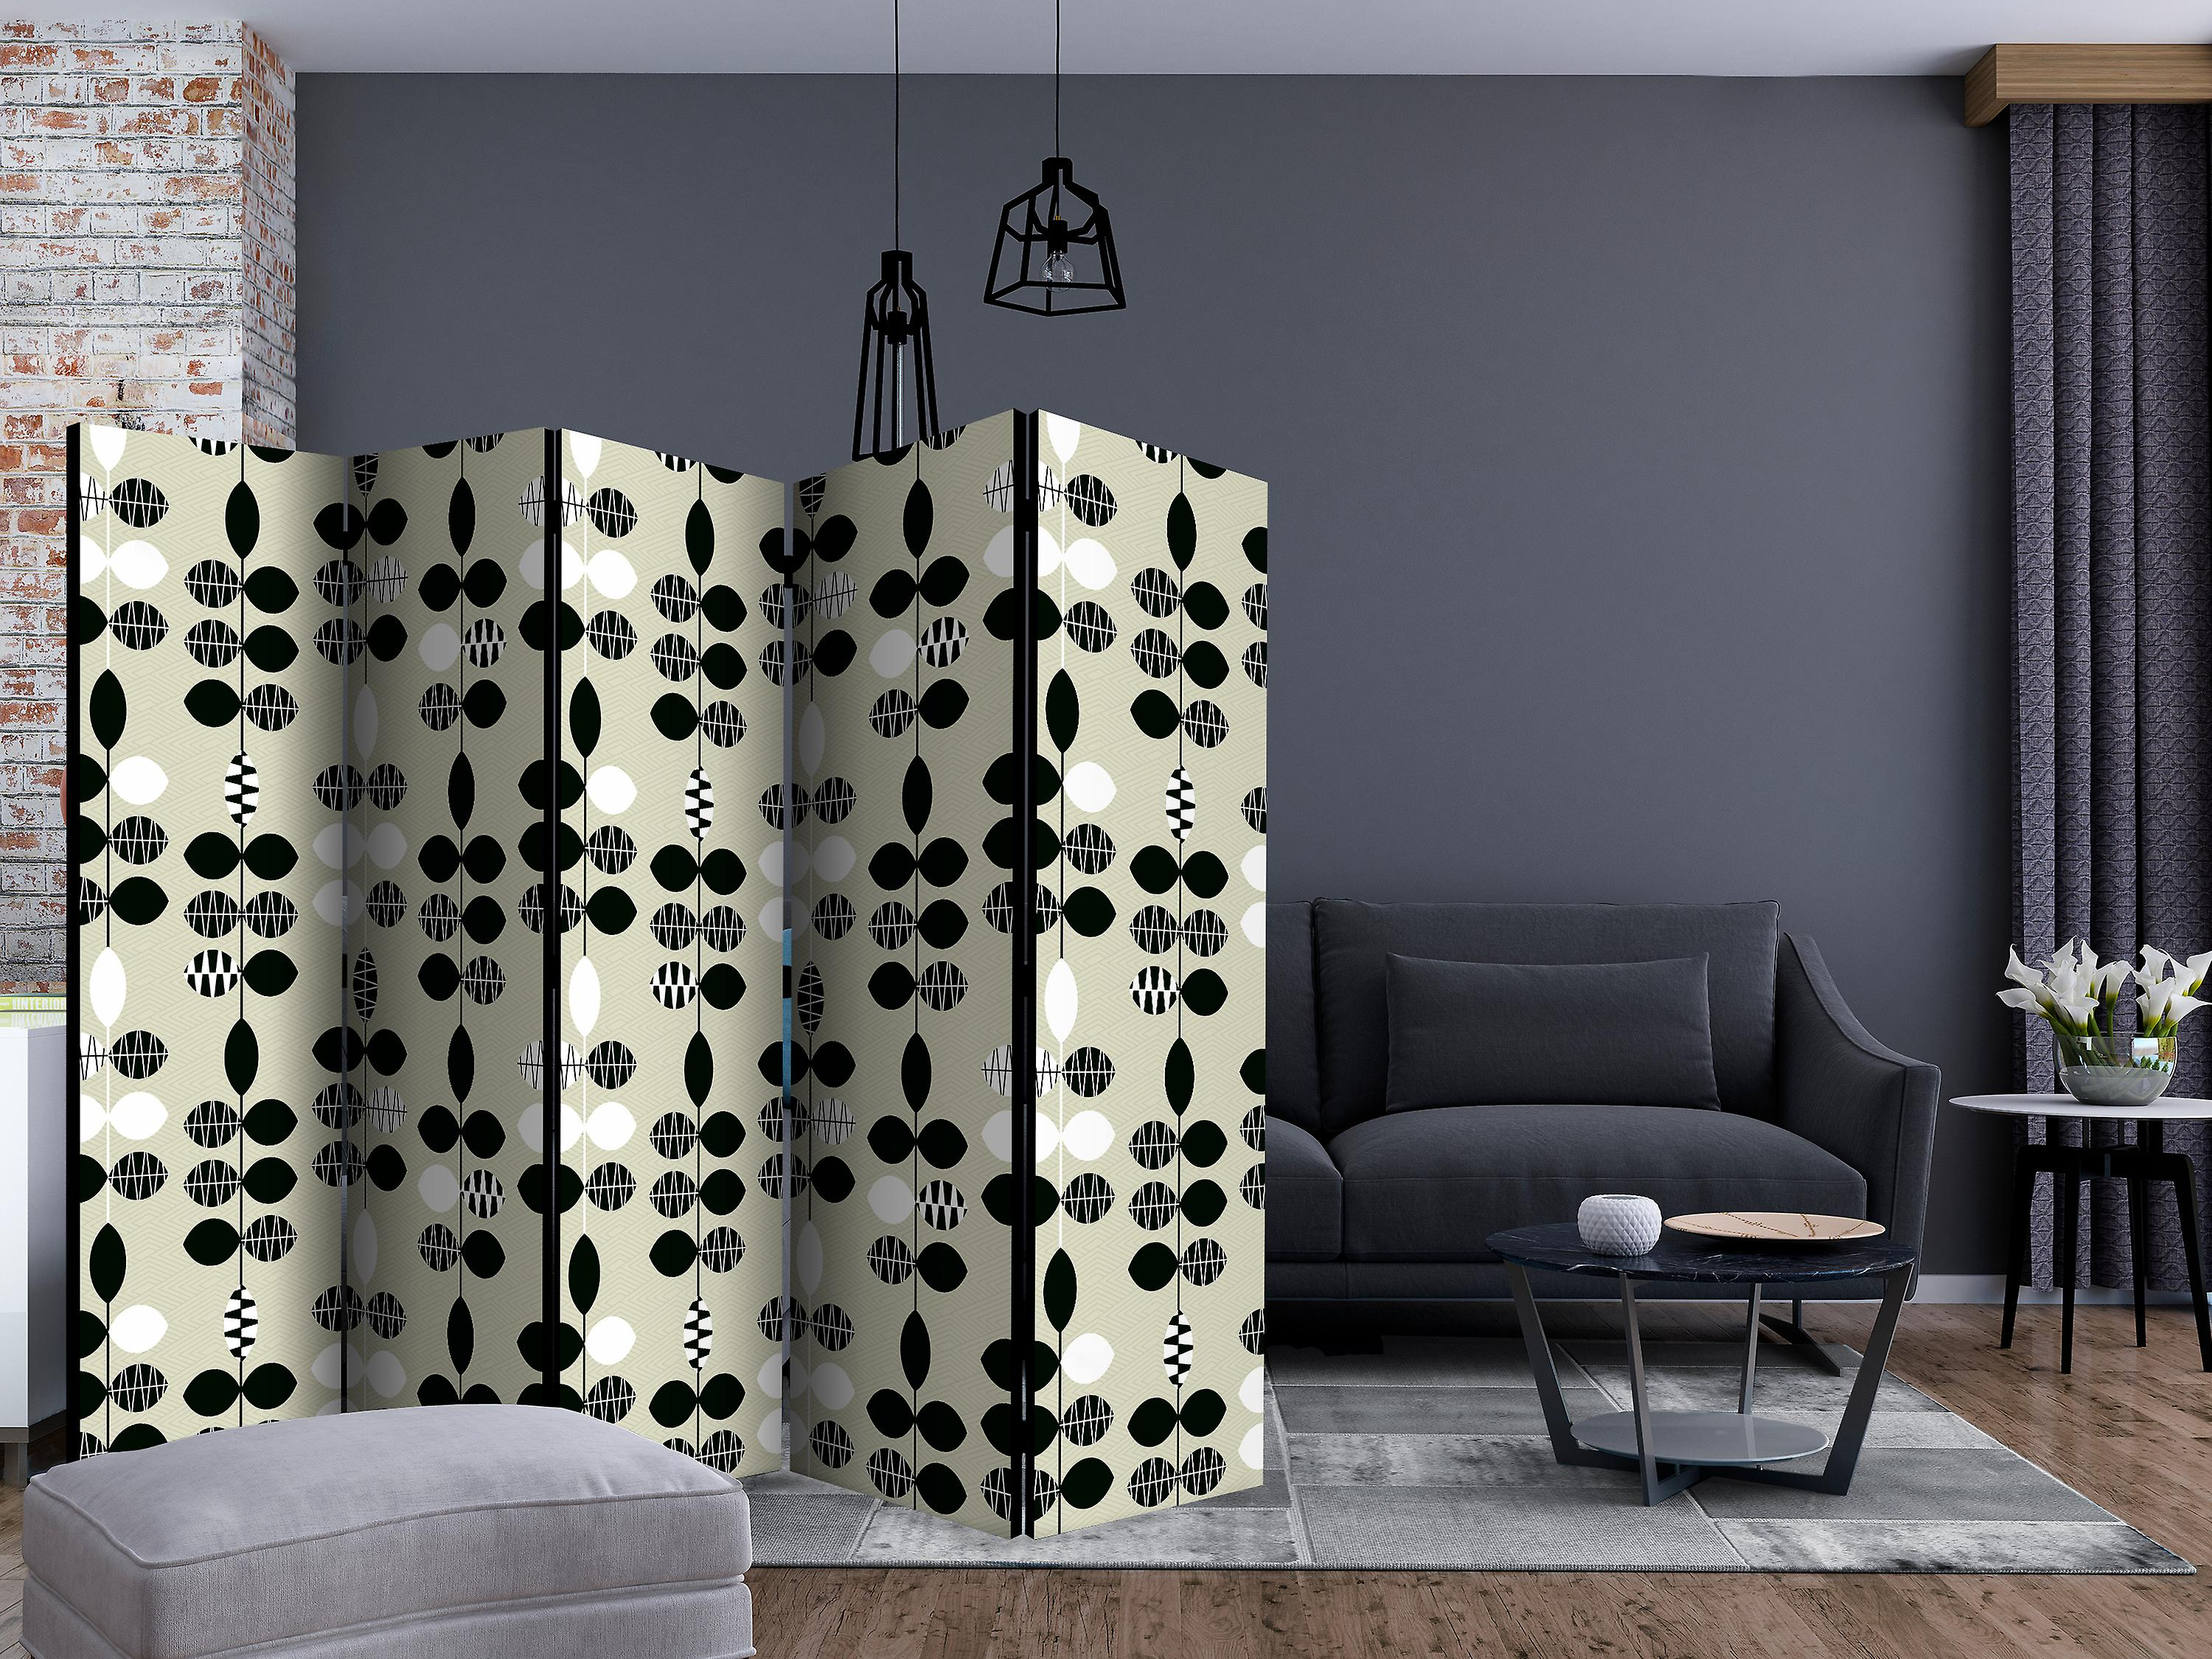 Paravent 5 volets - Black and White Dots [Room Dividers]